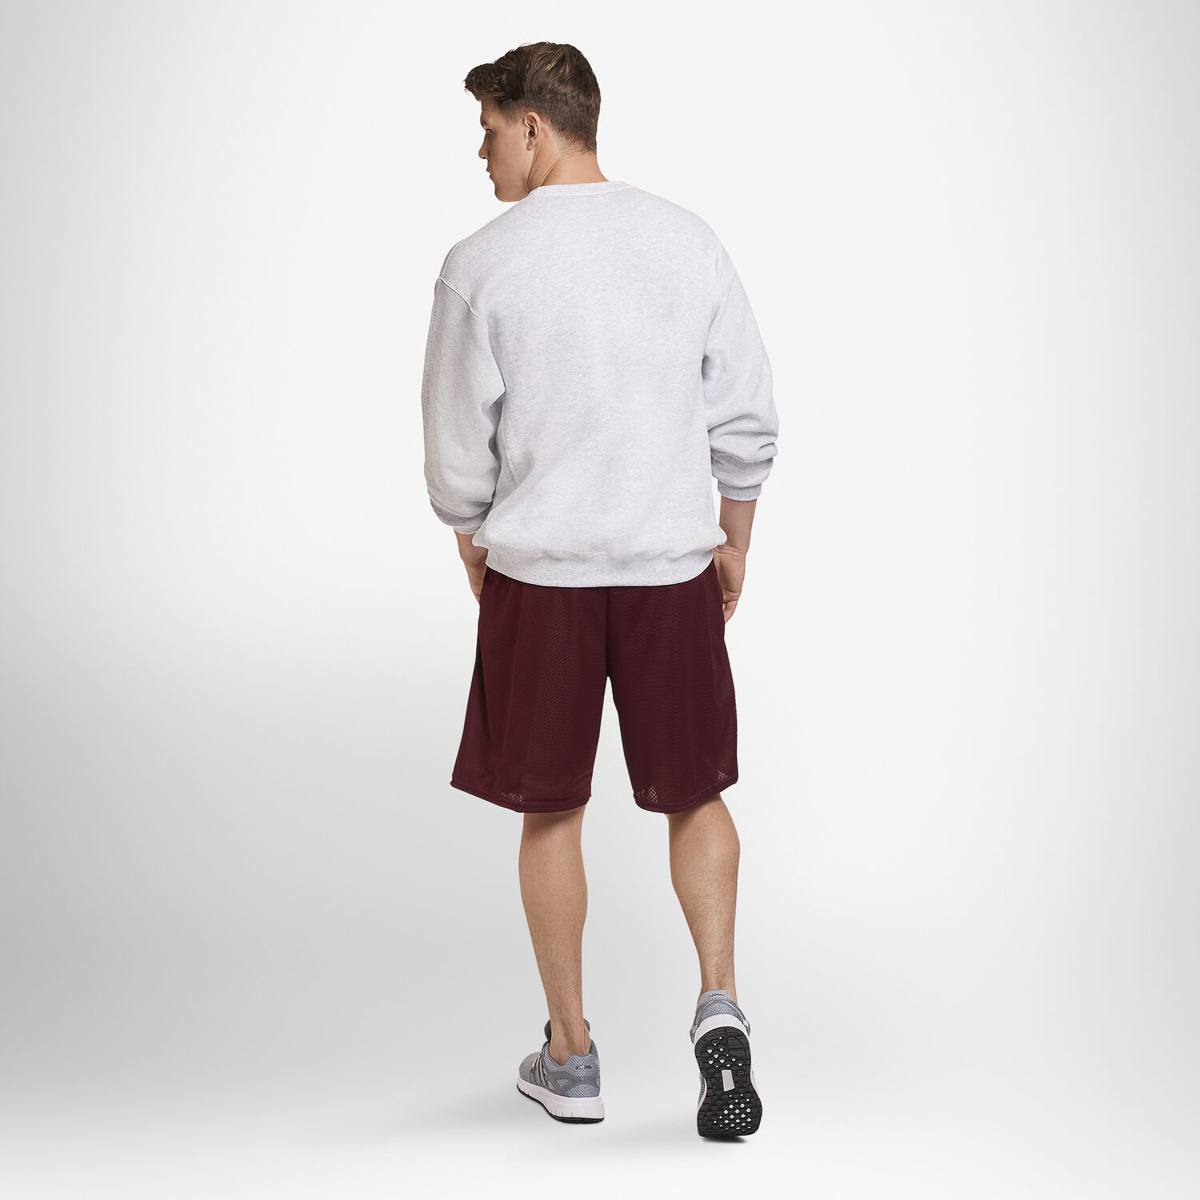 Russell-Athletic-Mens-Shorts-With-Pockets-Mesh-Moisture-Wicking-Gym-Activewear thumbnail 12